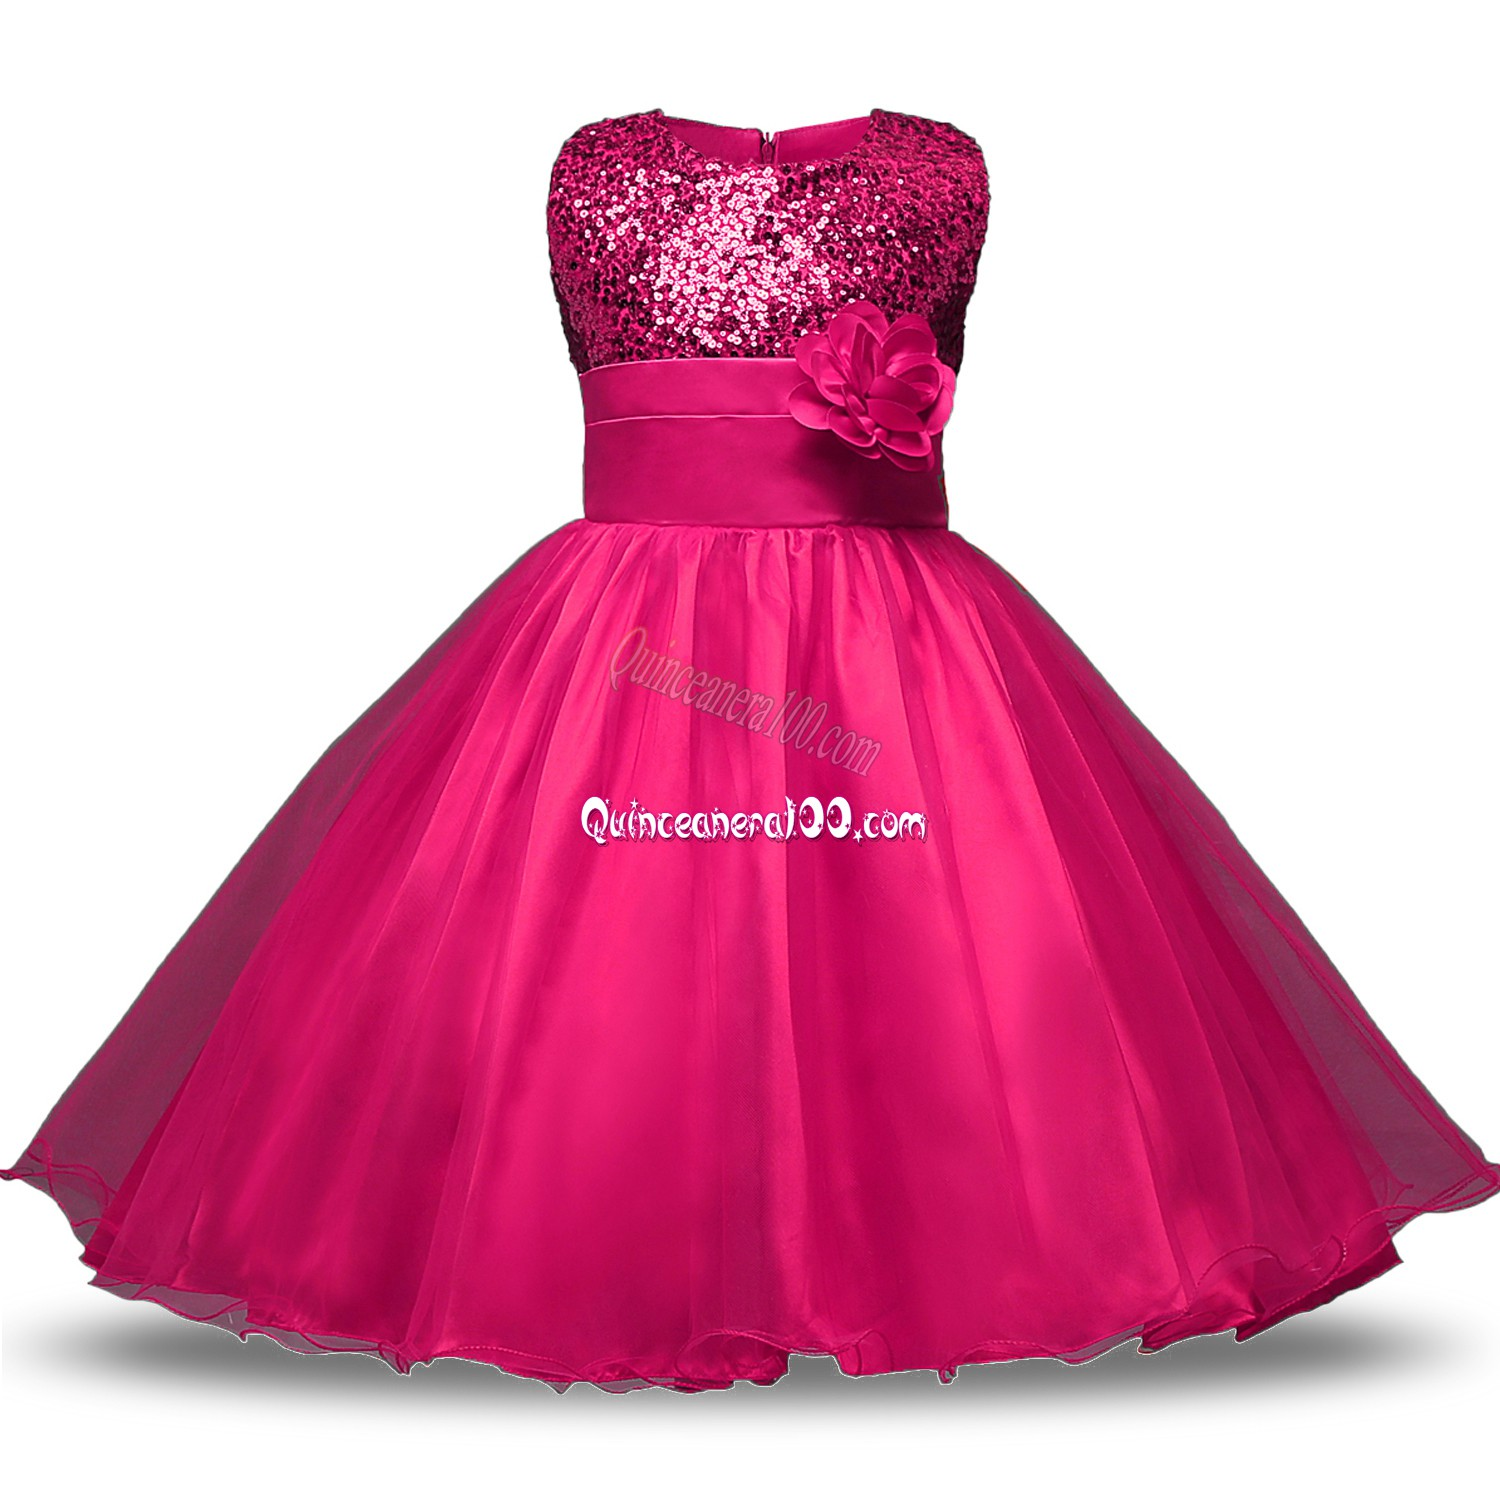 c66d0b84b9 Hot Pink Organza and Sequined Zipper Toddler Flower Girl Dress ...